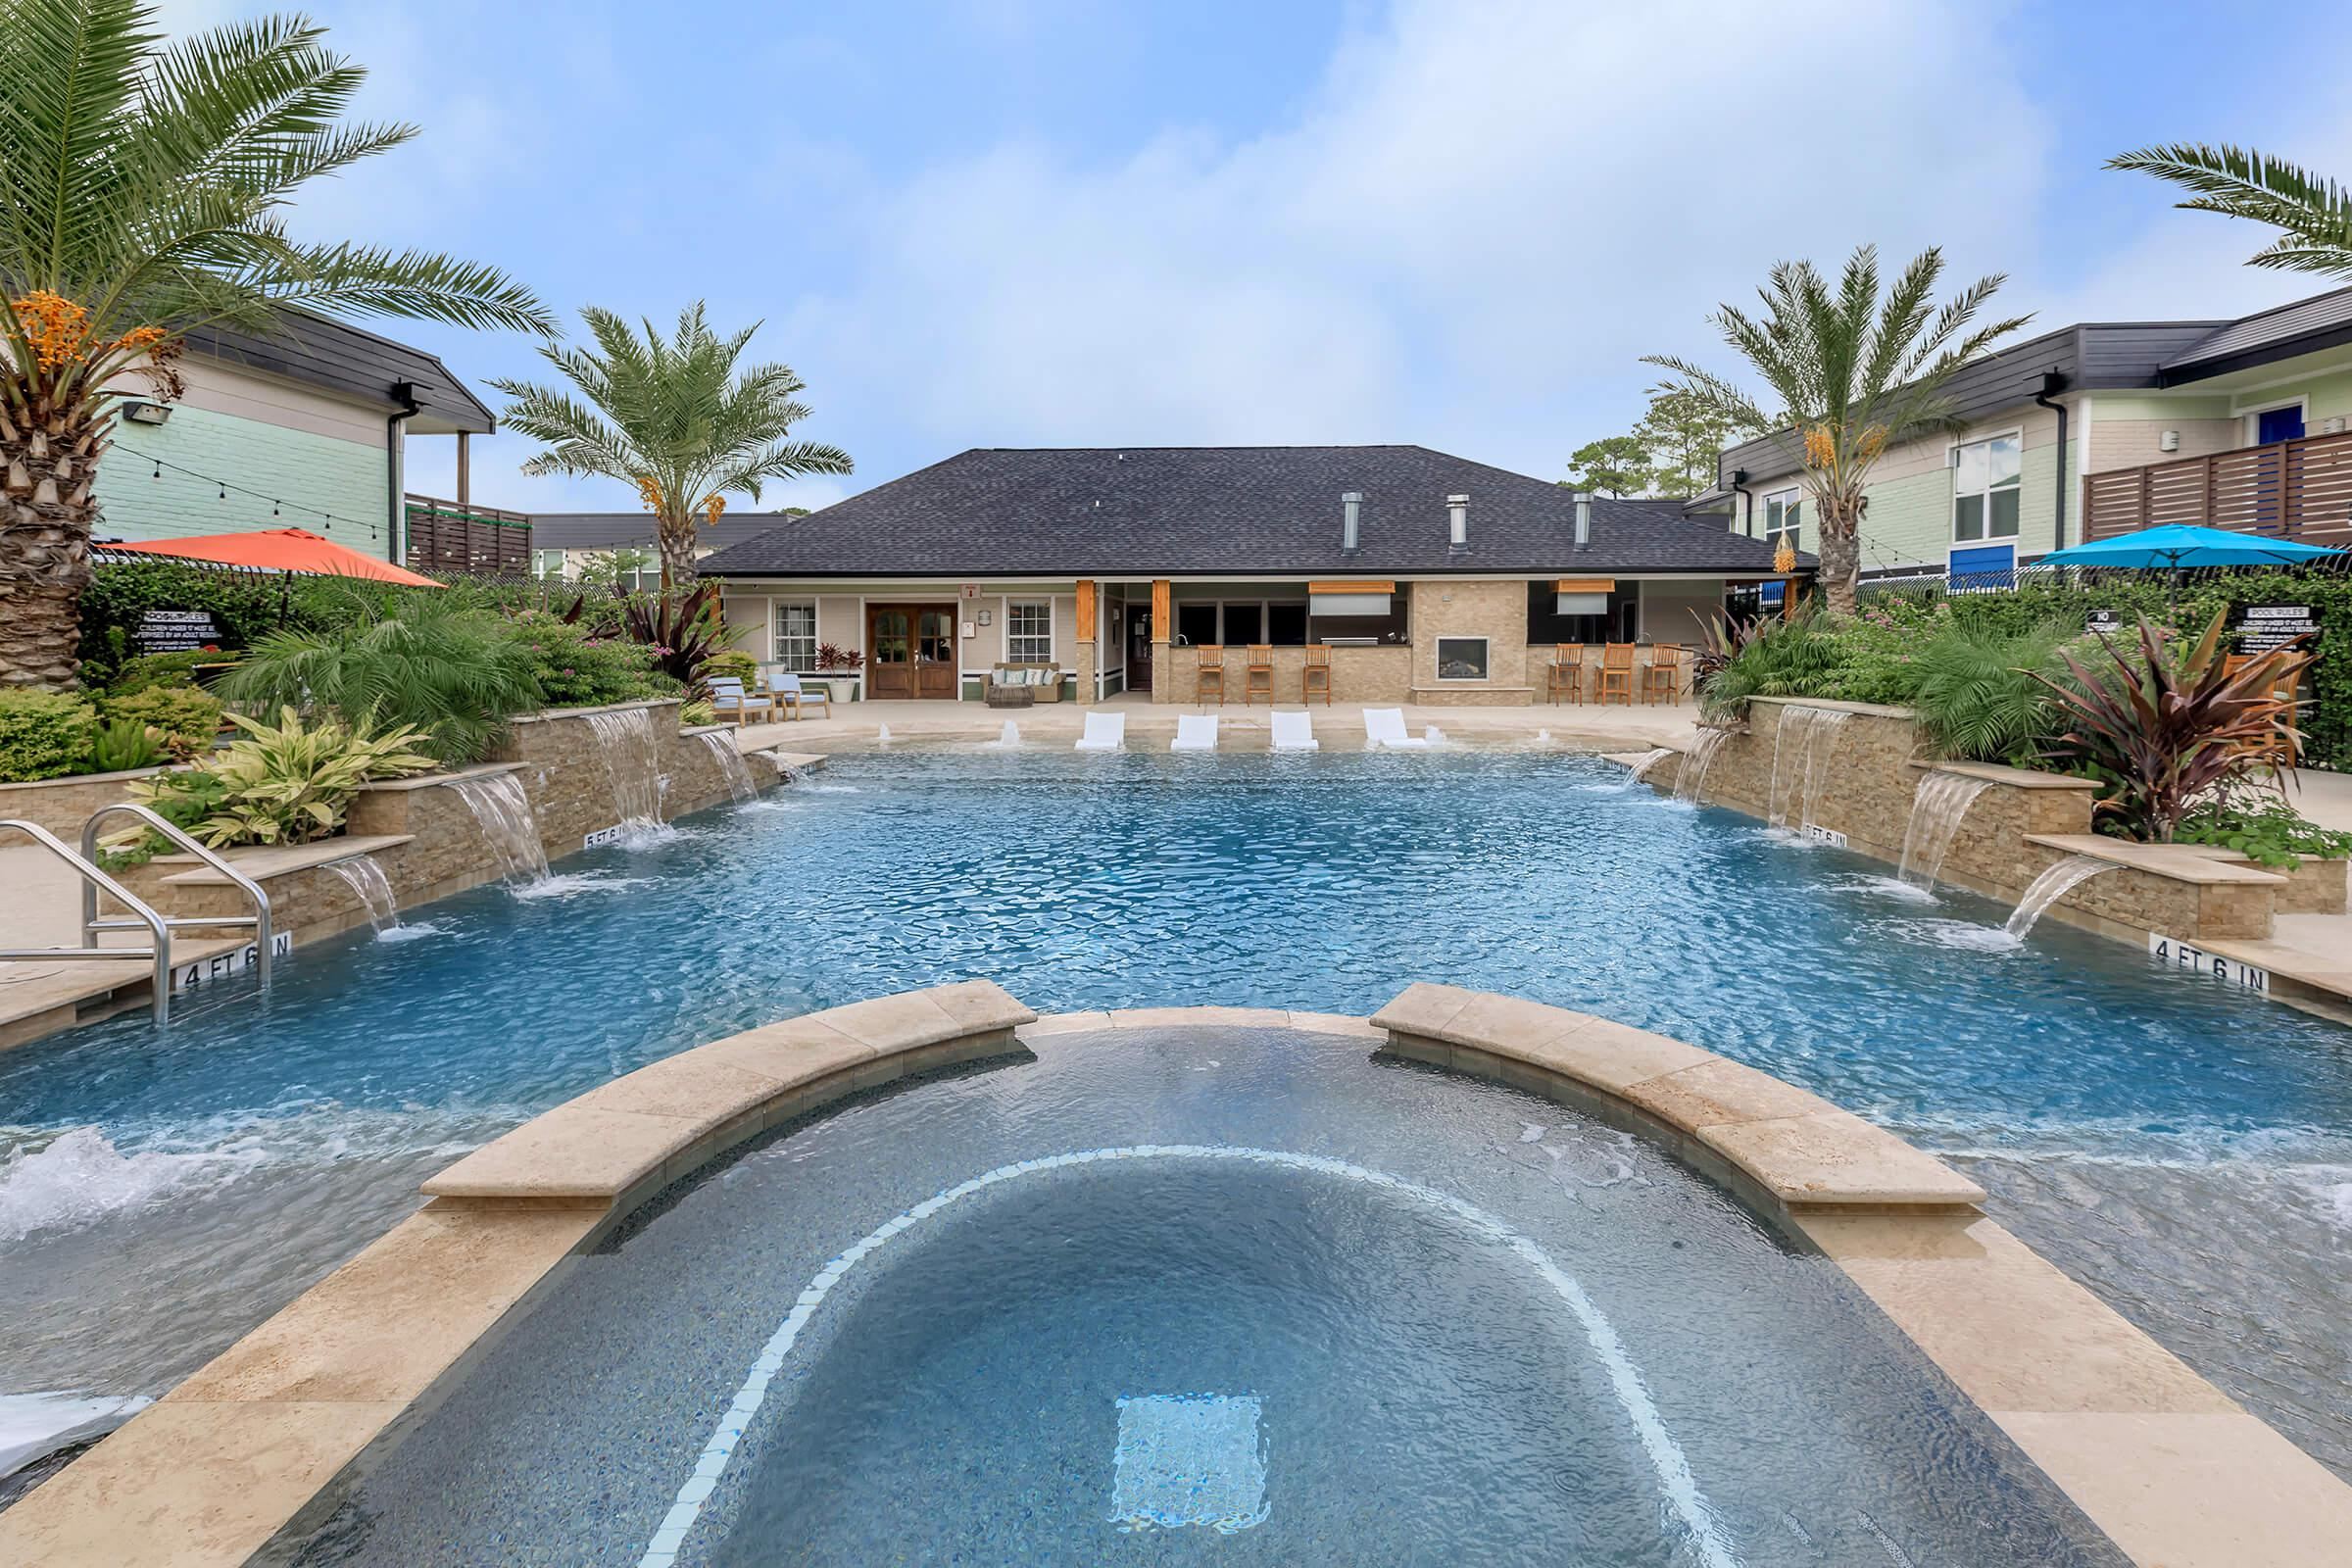 a pool of water in front of a house